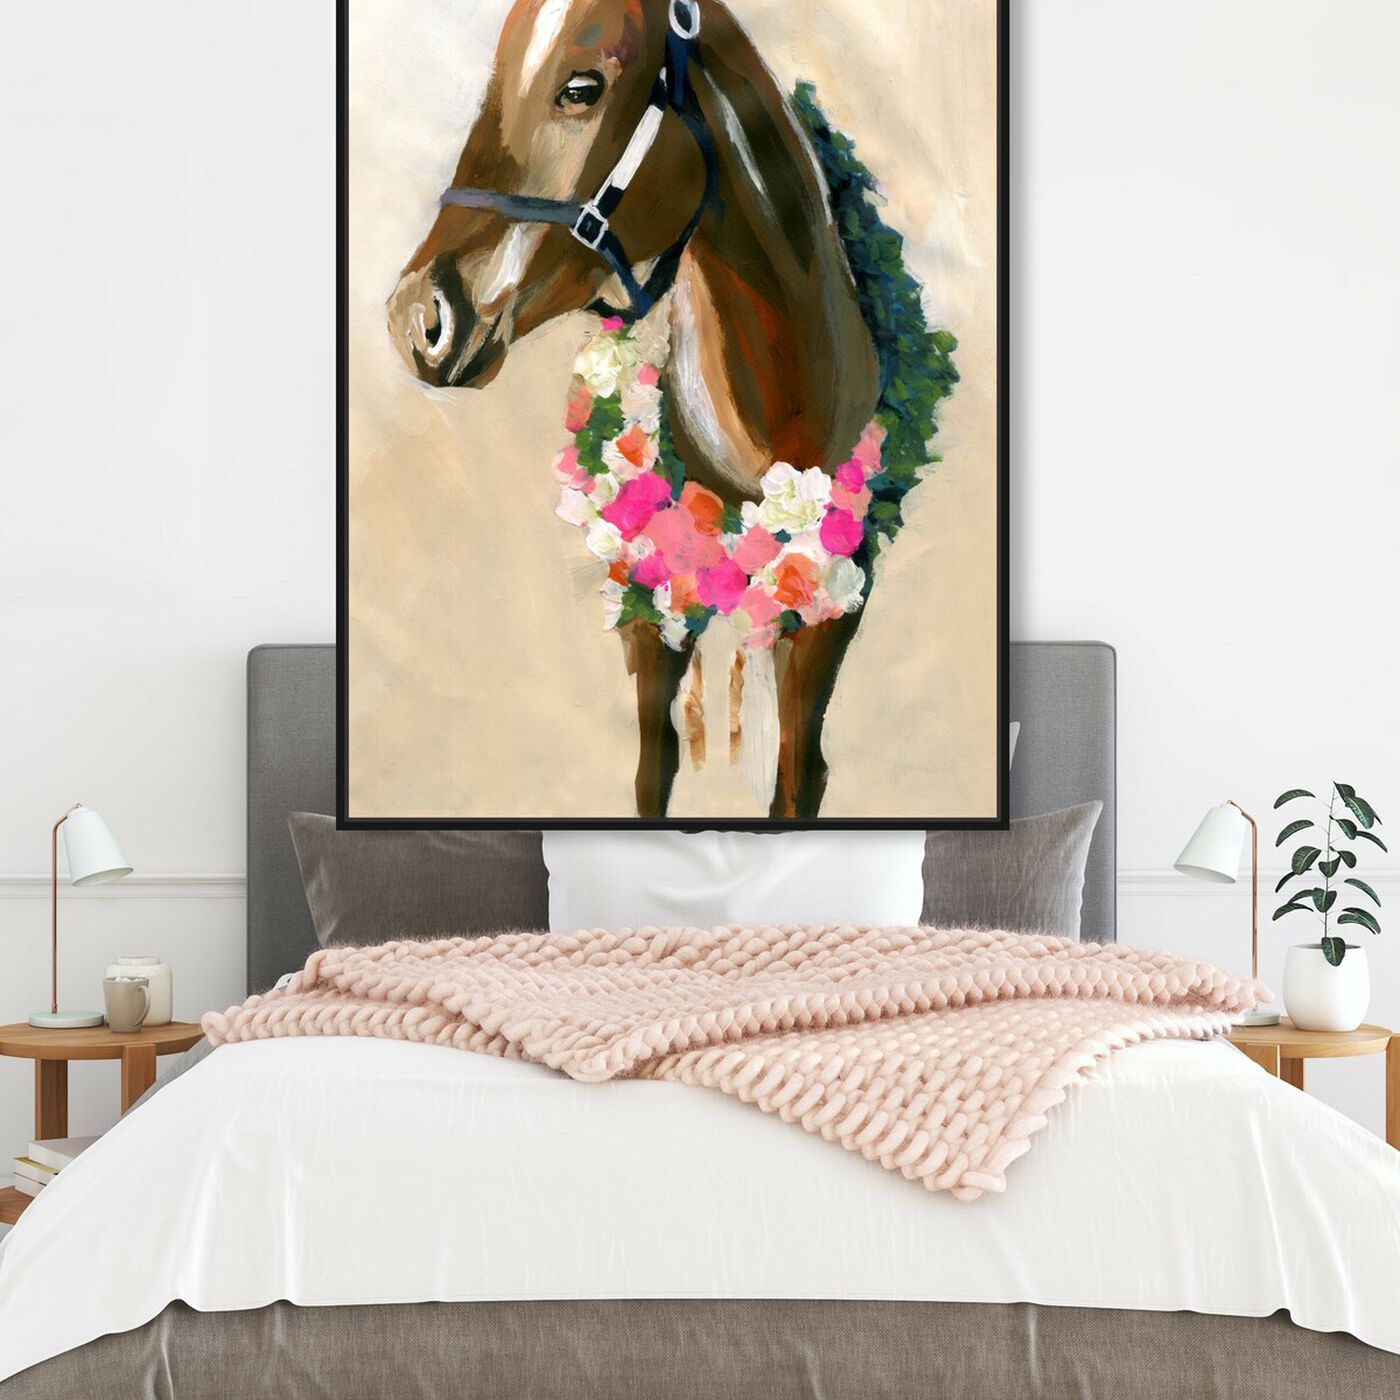 Hanging view of Champion By Carson Kressley featuring animals and farm animals art.